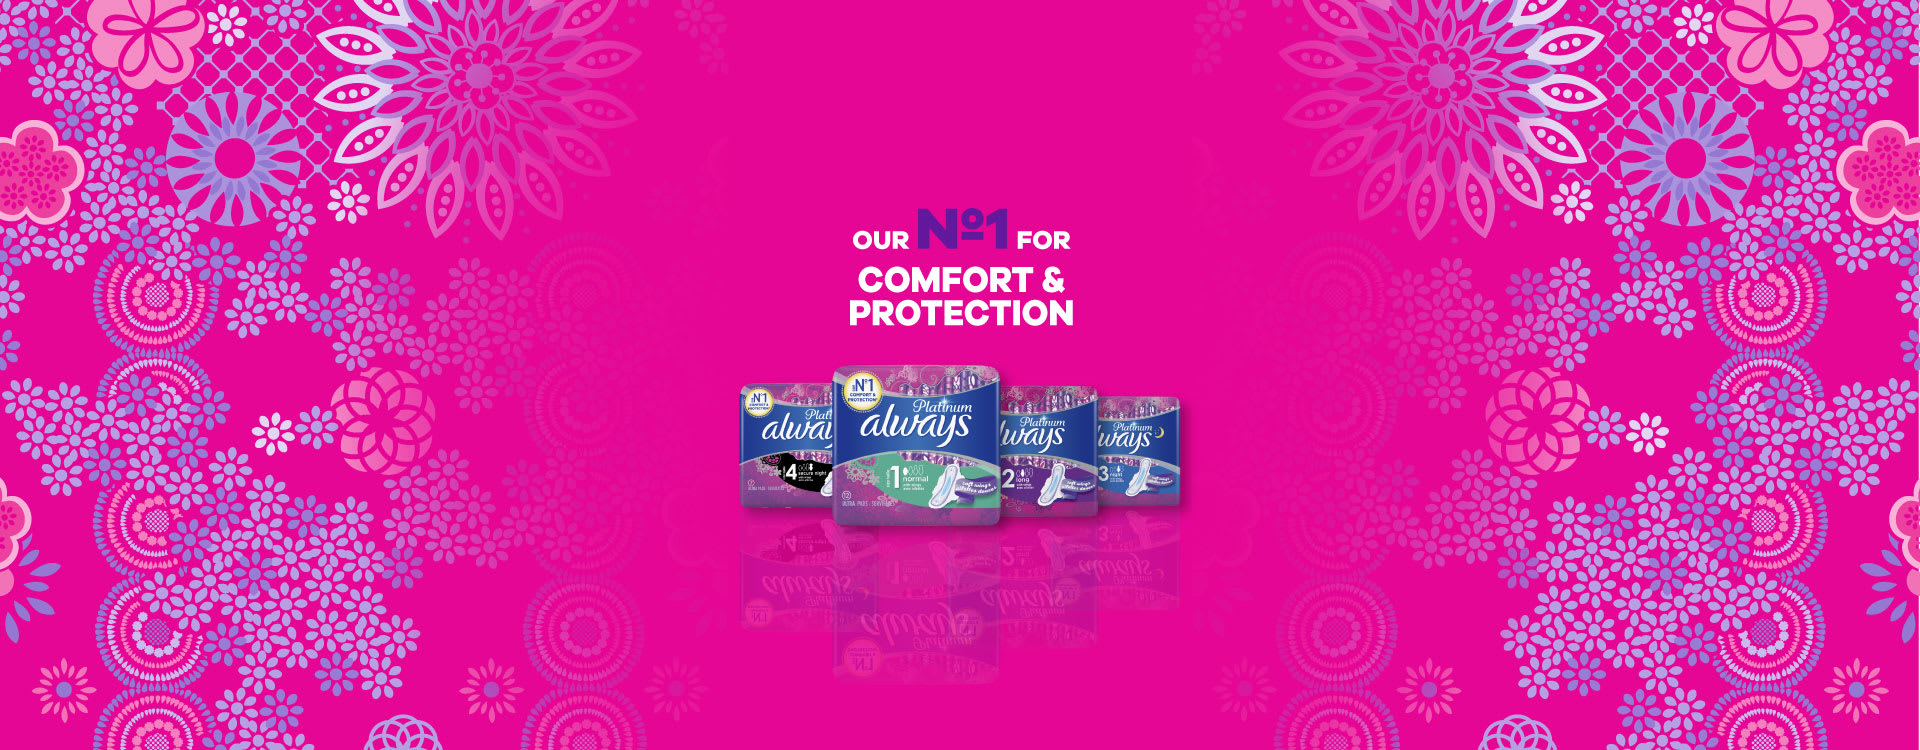 OUR No.1 FOR COMFORT & PROTECTION